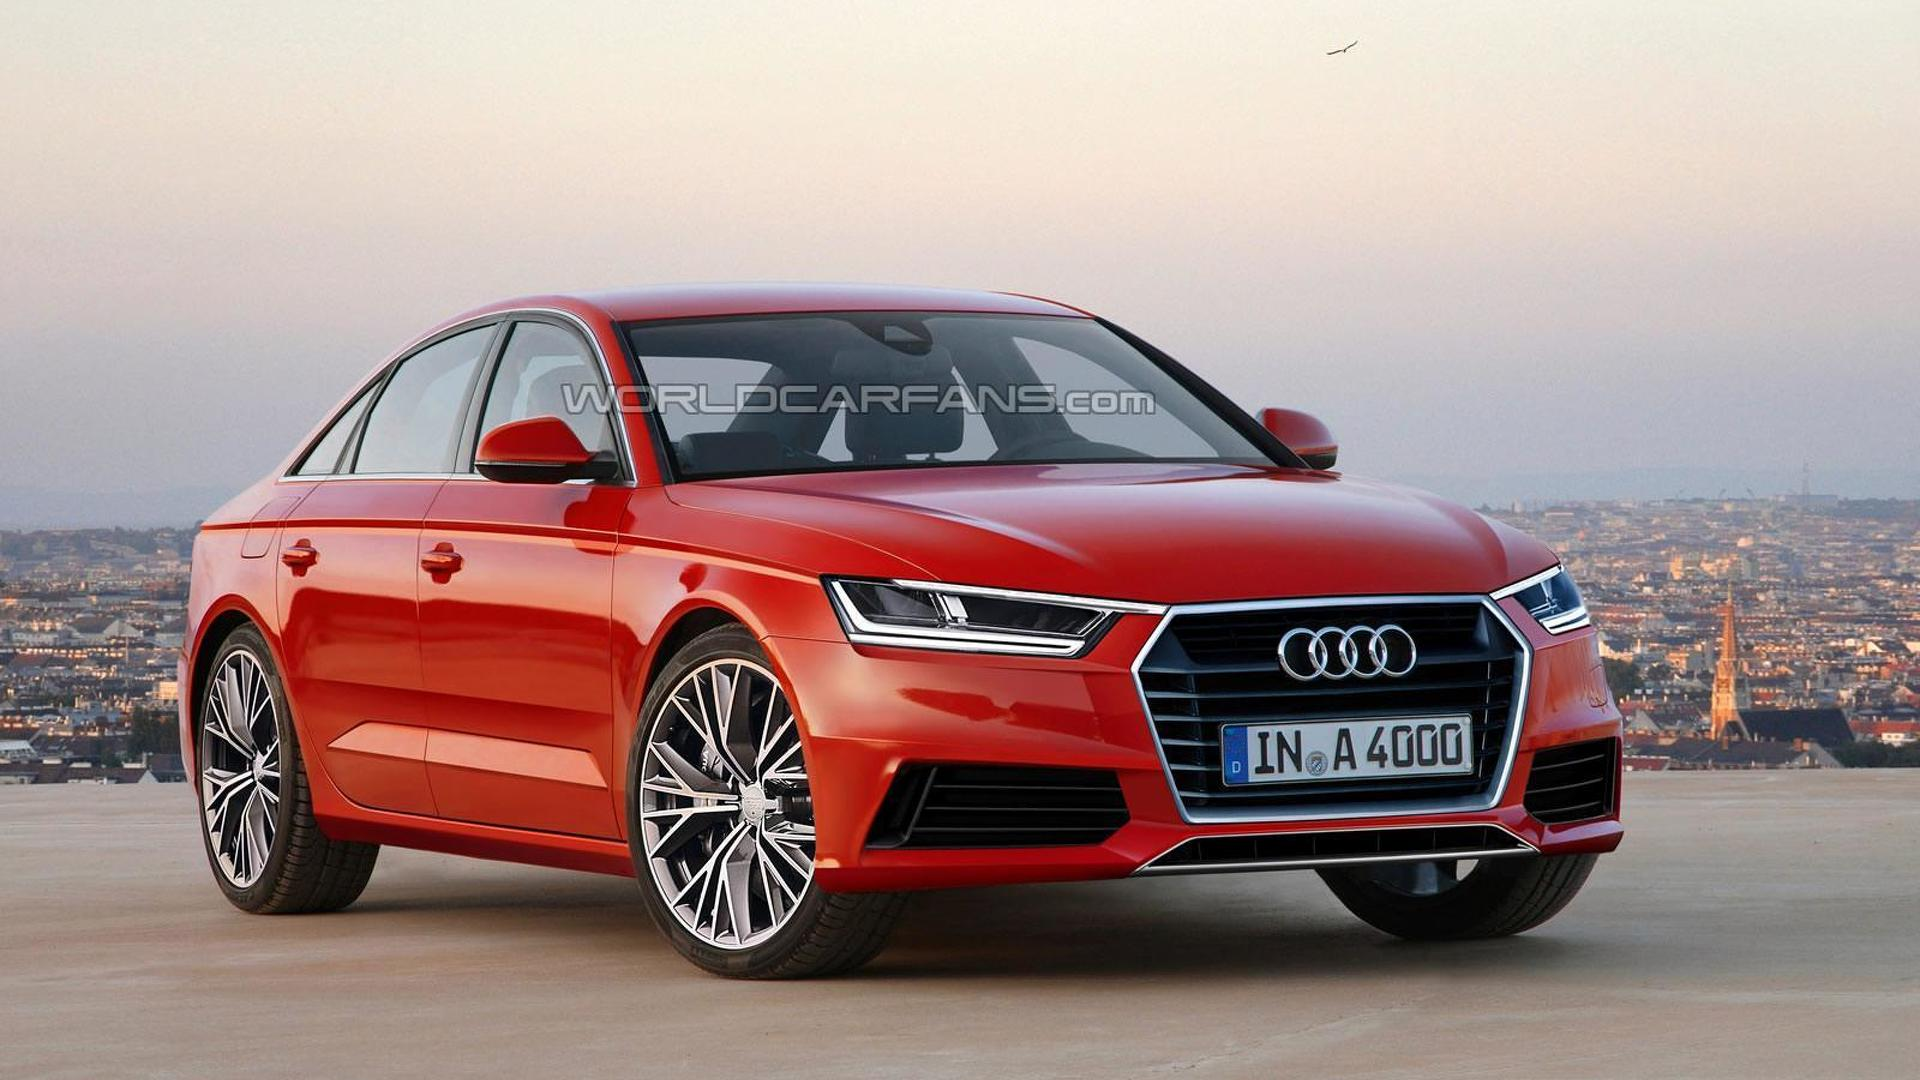 Next generation Audi A4 and A4 Avant speculatively rendered